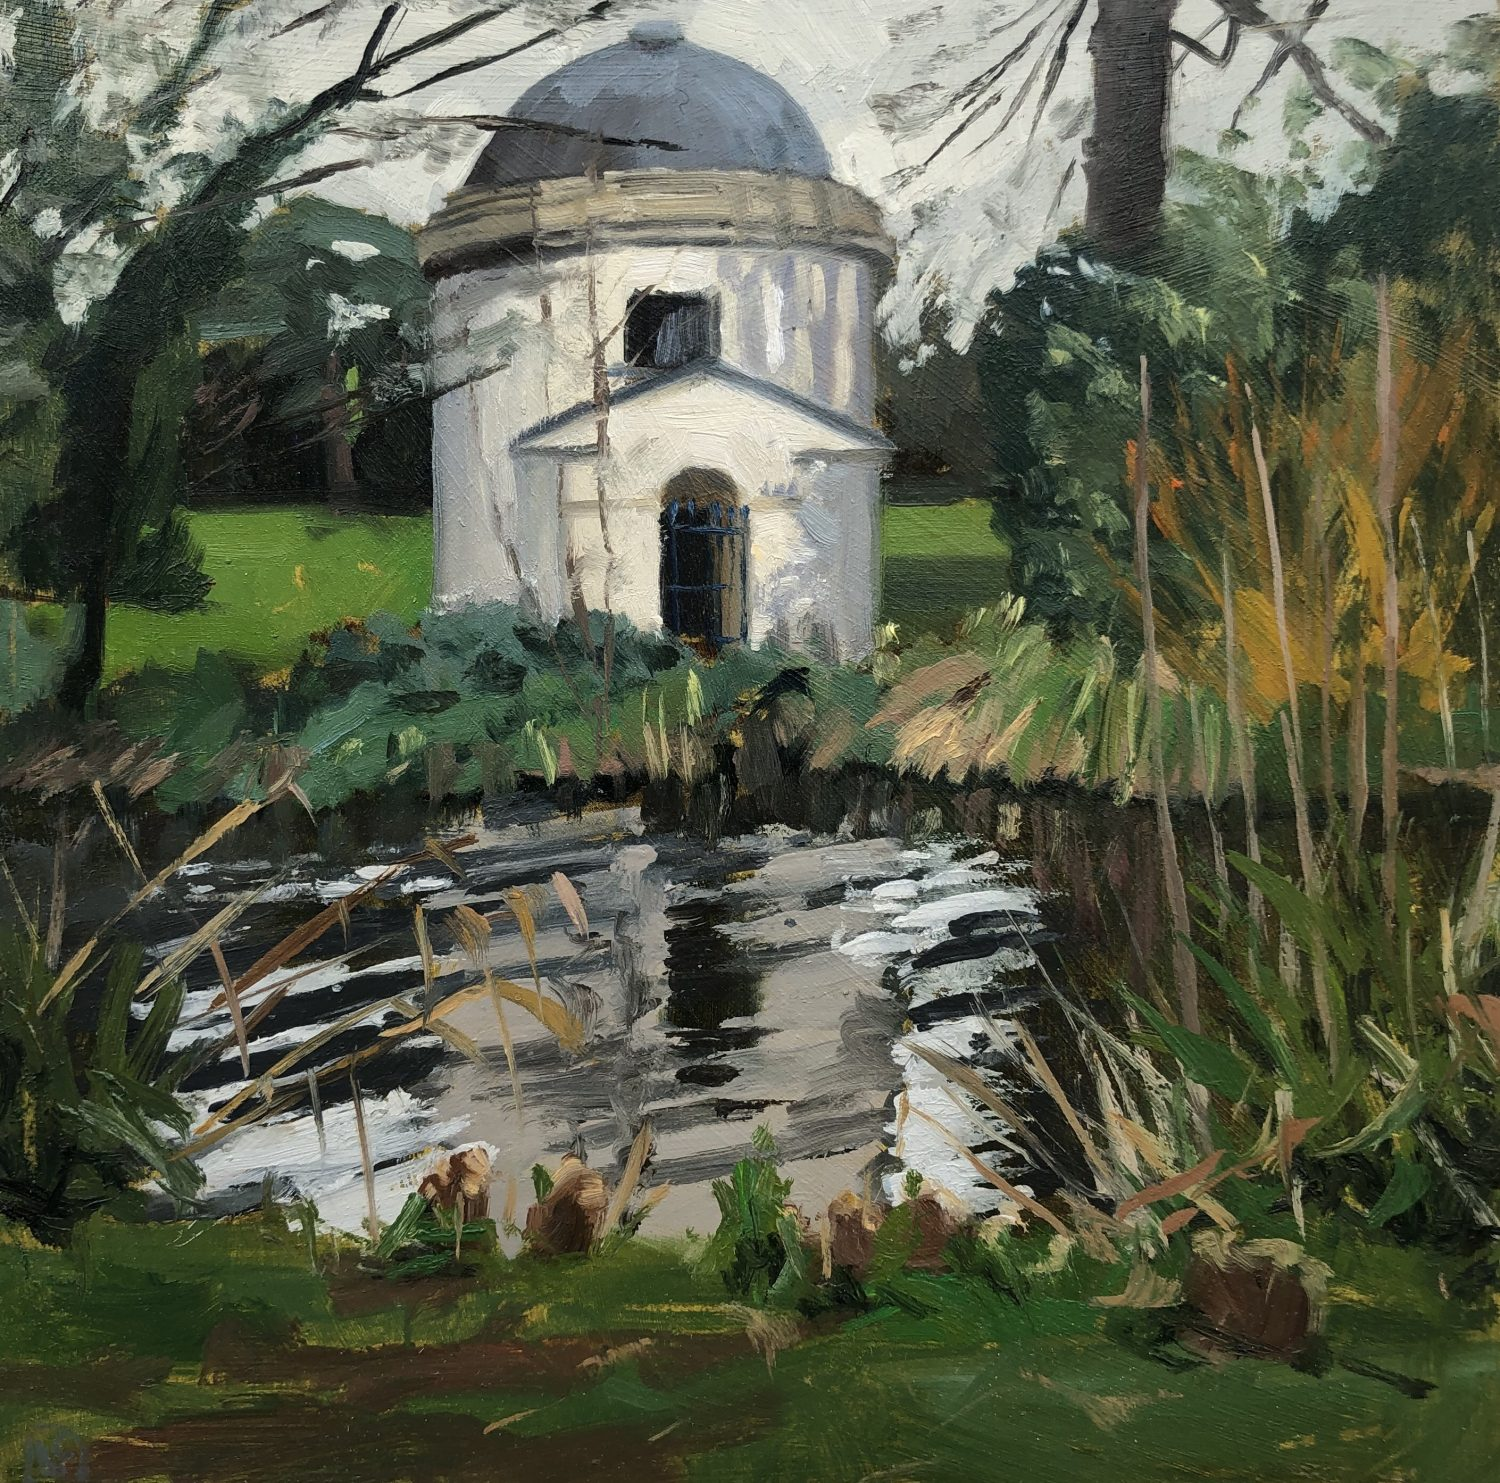 The Ionic Temple, Chiswick House by Lesley Dabson